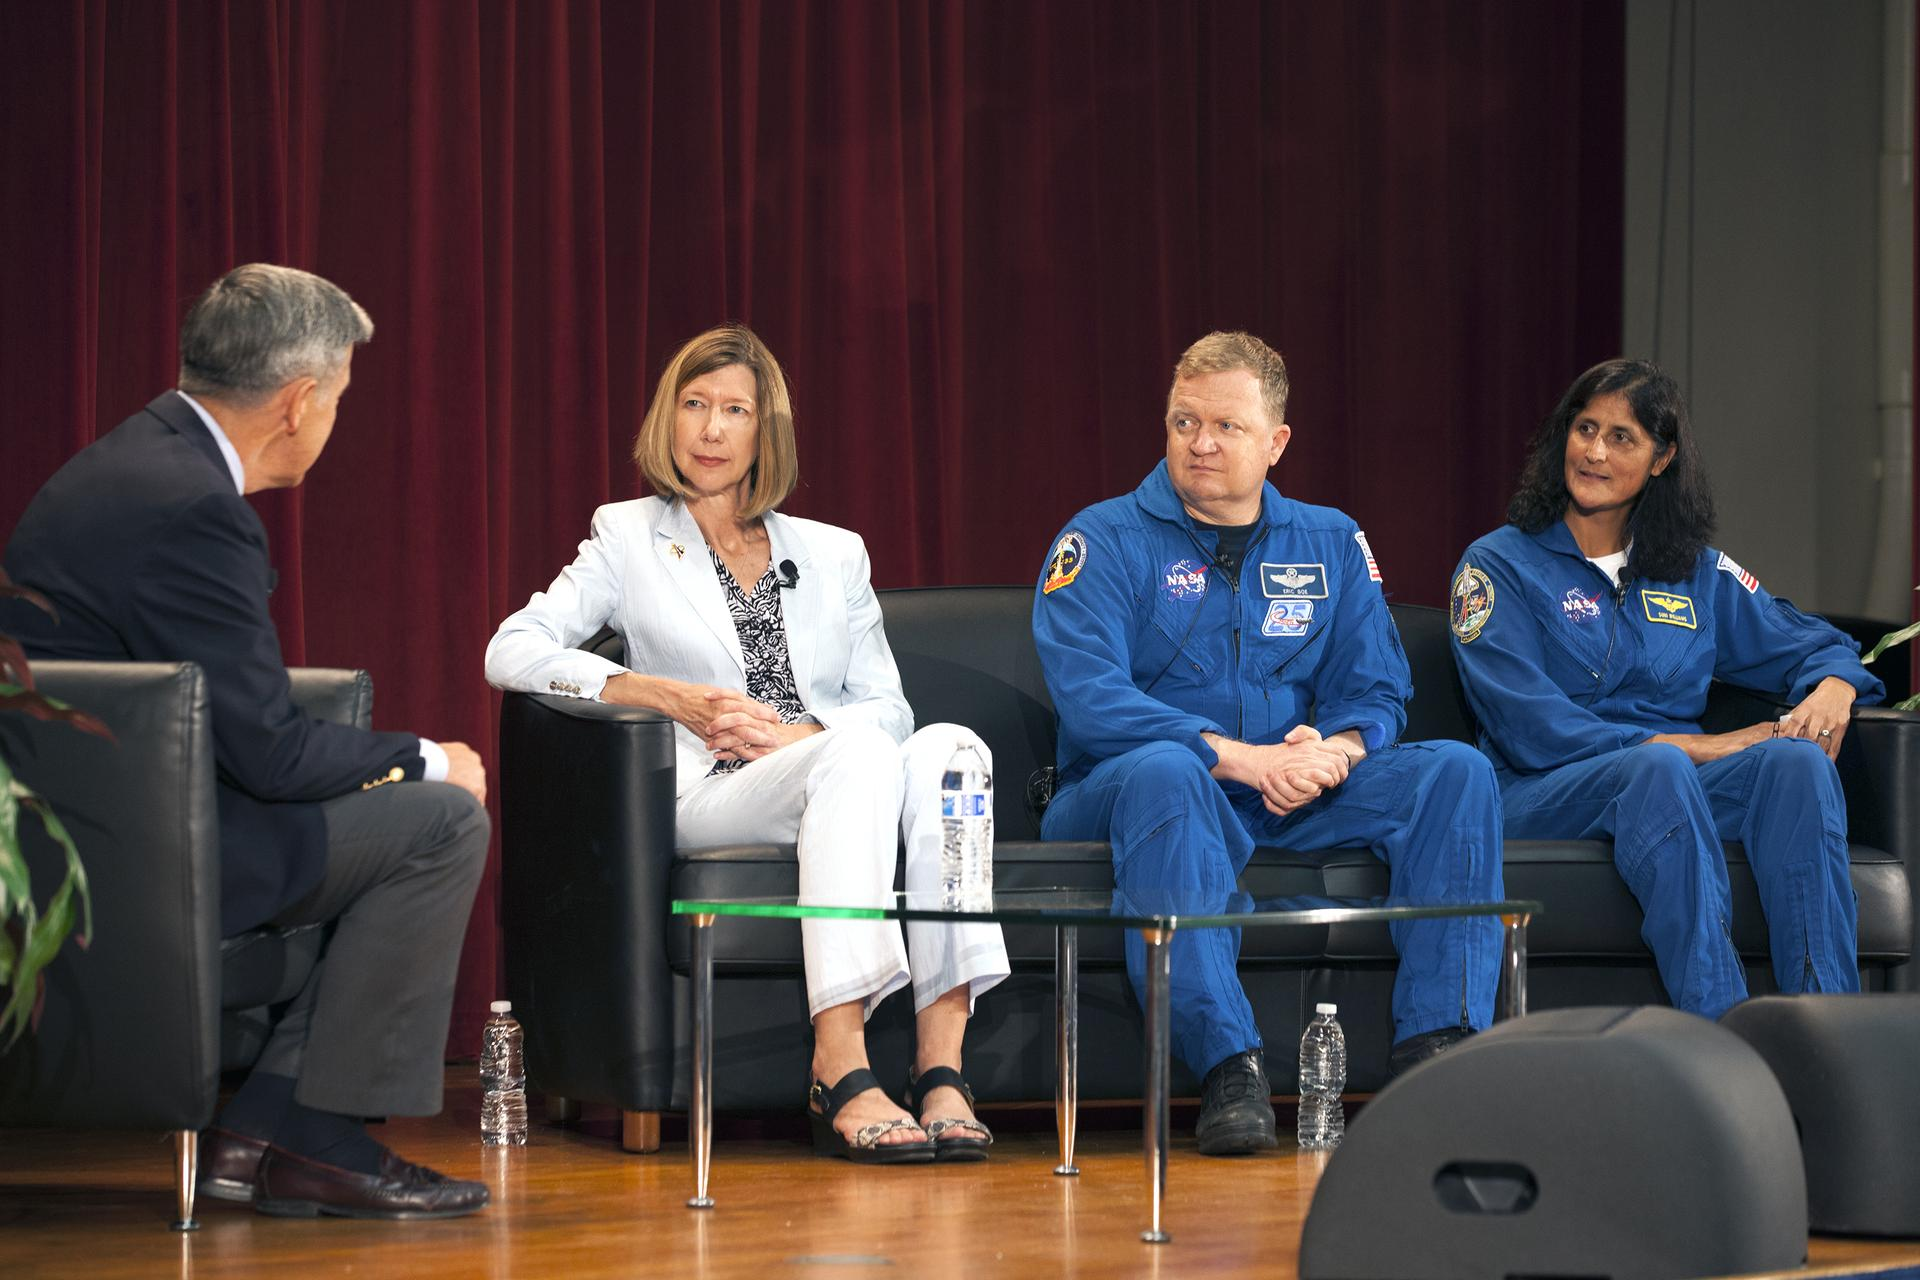 Kathy Lueders, center, has managed NASA's commercial crew program since 2014.